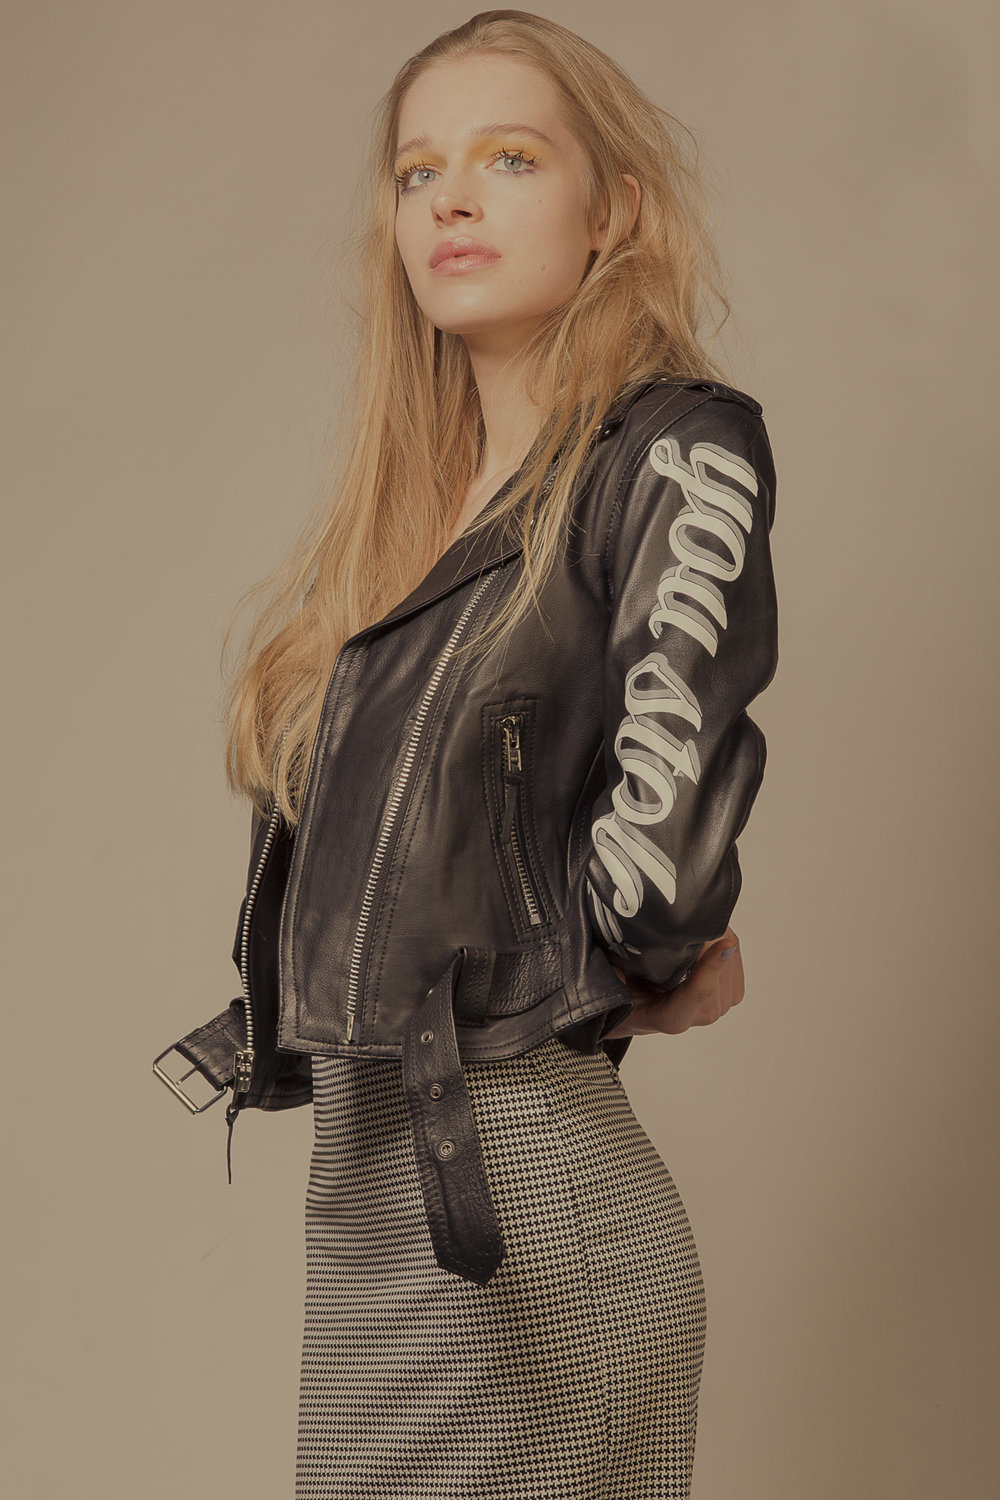 Laurie Leather Jacket, Blitz London skirt